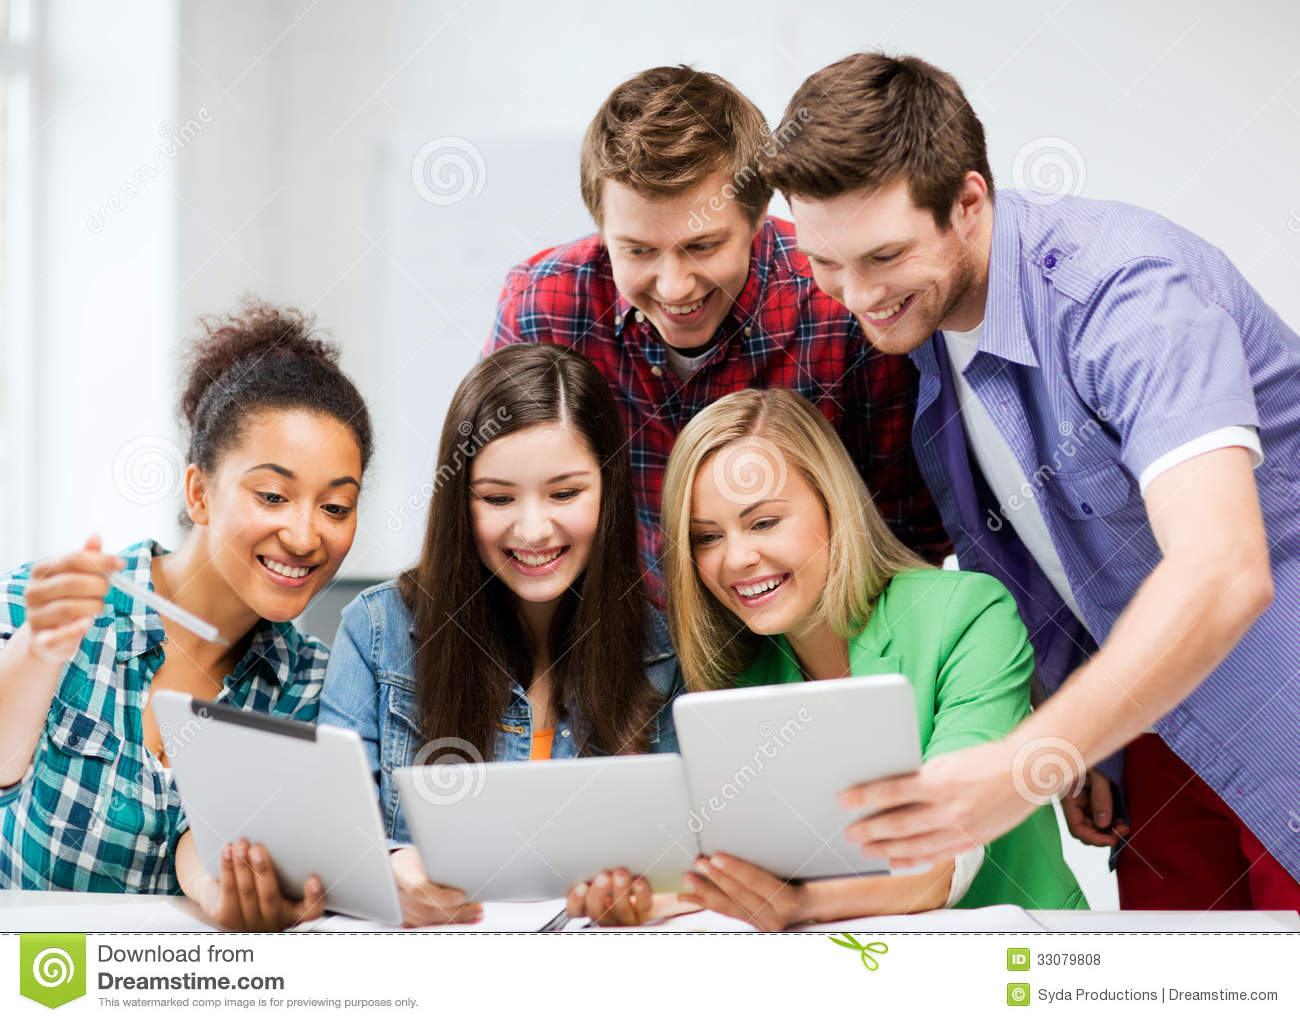 Royalty Free Stock Photos: Students looking at tablet pc in lecture at ...